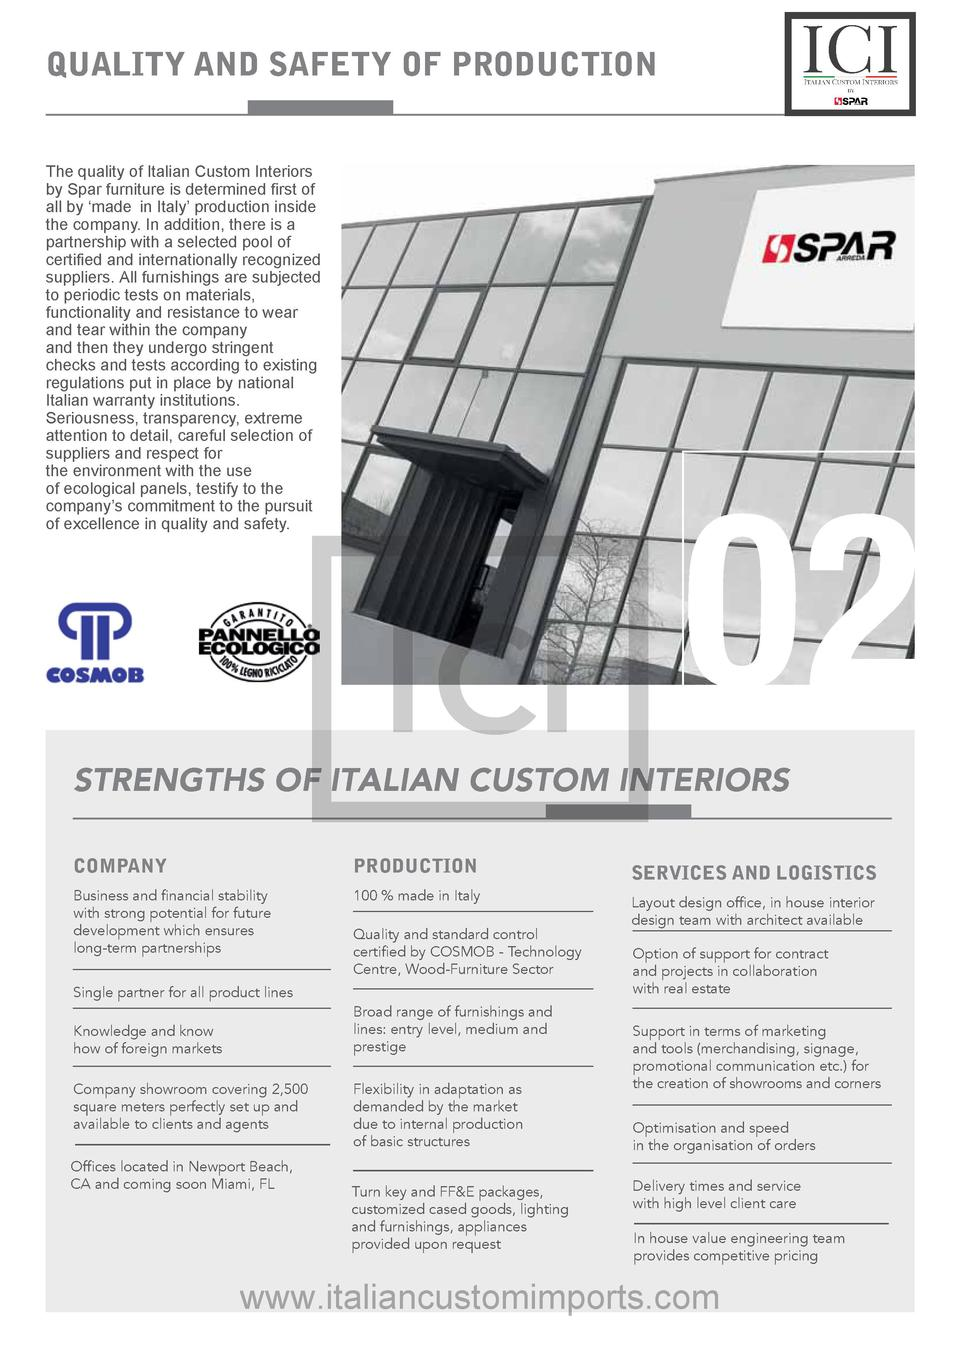 Quality and safety of production The quality of Italian Custom Interiors by Spar furniture is determined first of all by  ...